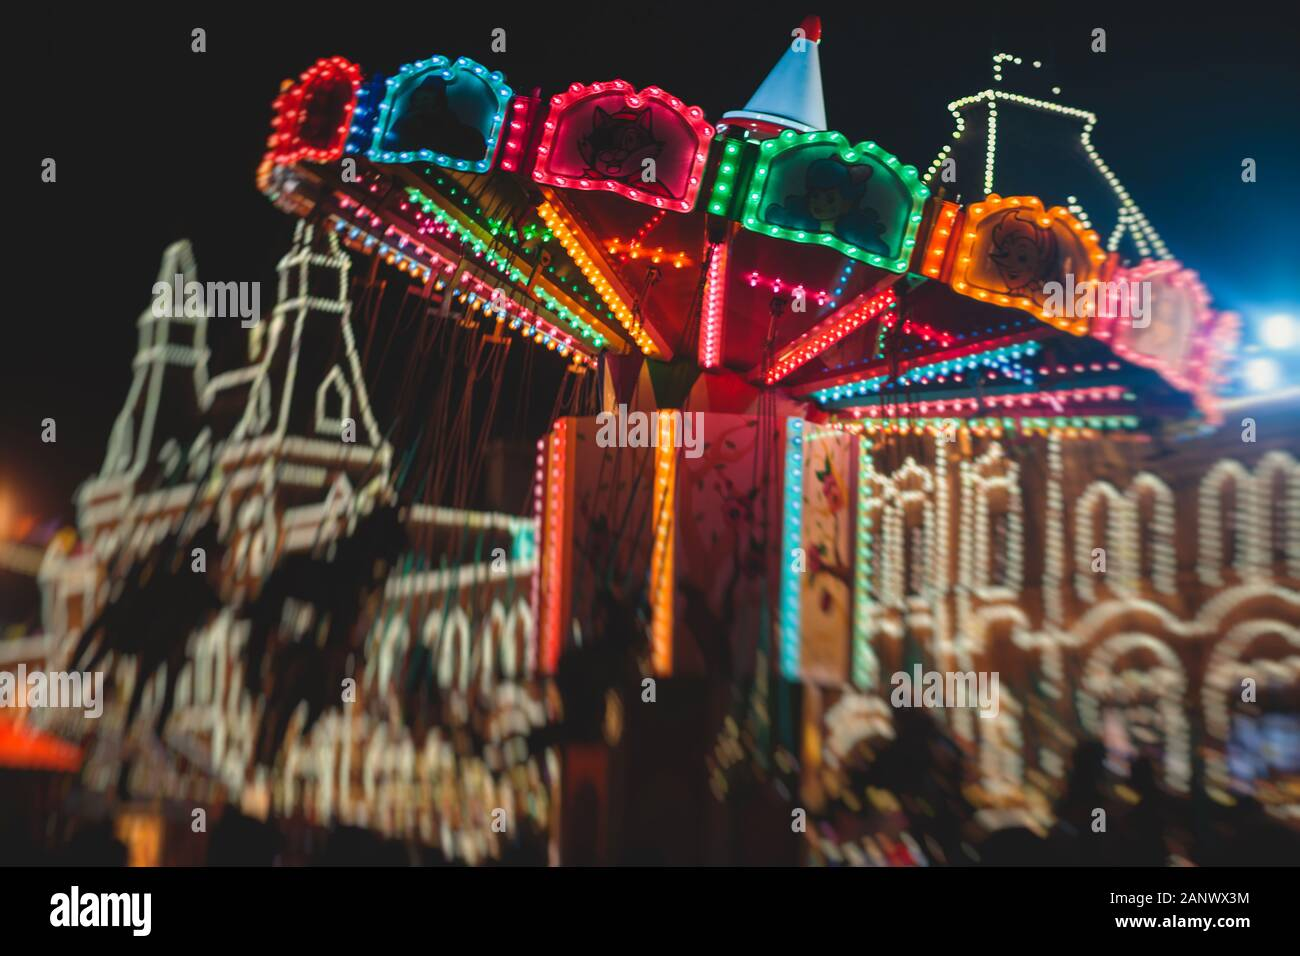 Moscow streets with New Year decoration, Christmas illumination on the Red Square, with Christmas market fair, with Saint Basil's Cathedral, Russia Stock Photo